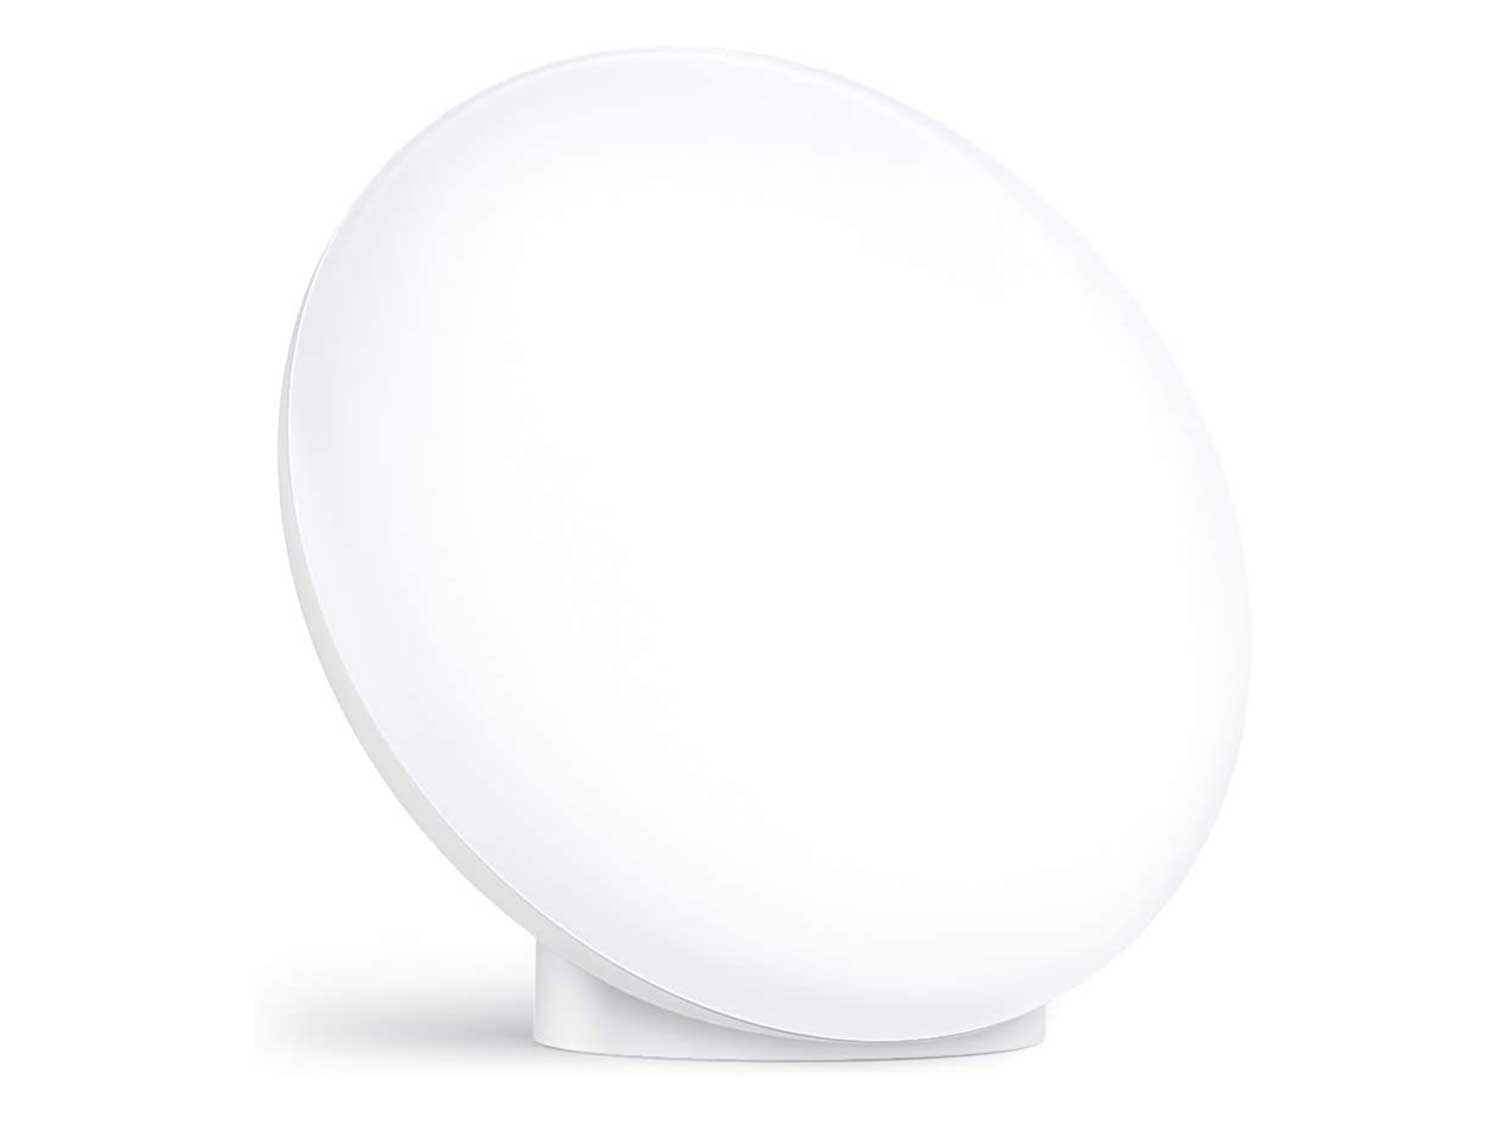 Light Therapy Lamp, TaoTronics UV-Free 10000 Lux Therapy Light, Touch Control with Stepless Brightness Levels, Large Light Surface, Memory Function, Compact Size for a Happy Life